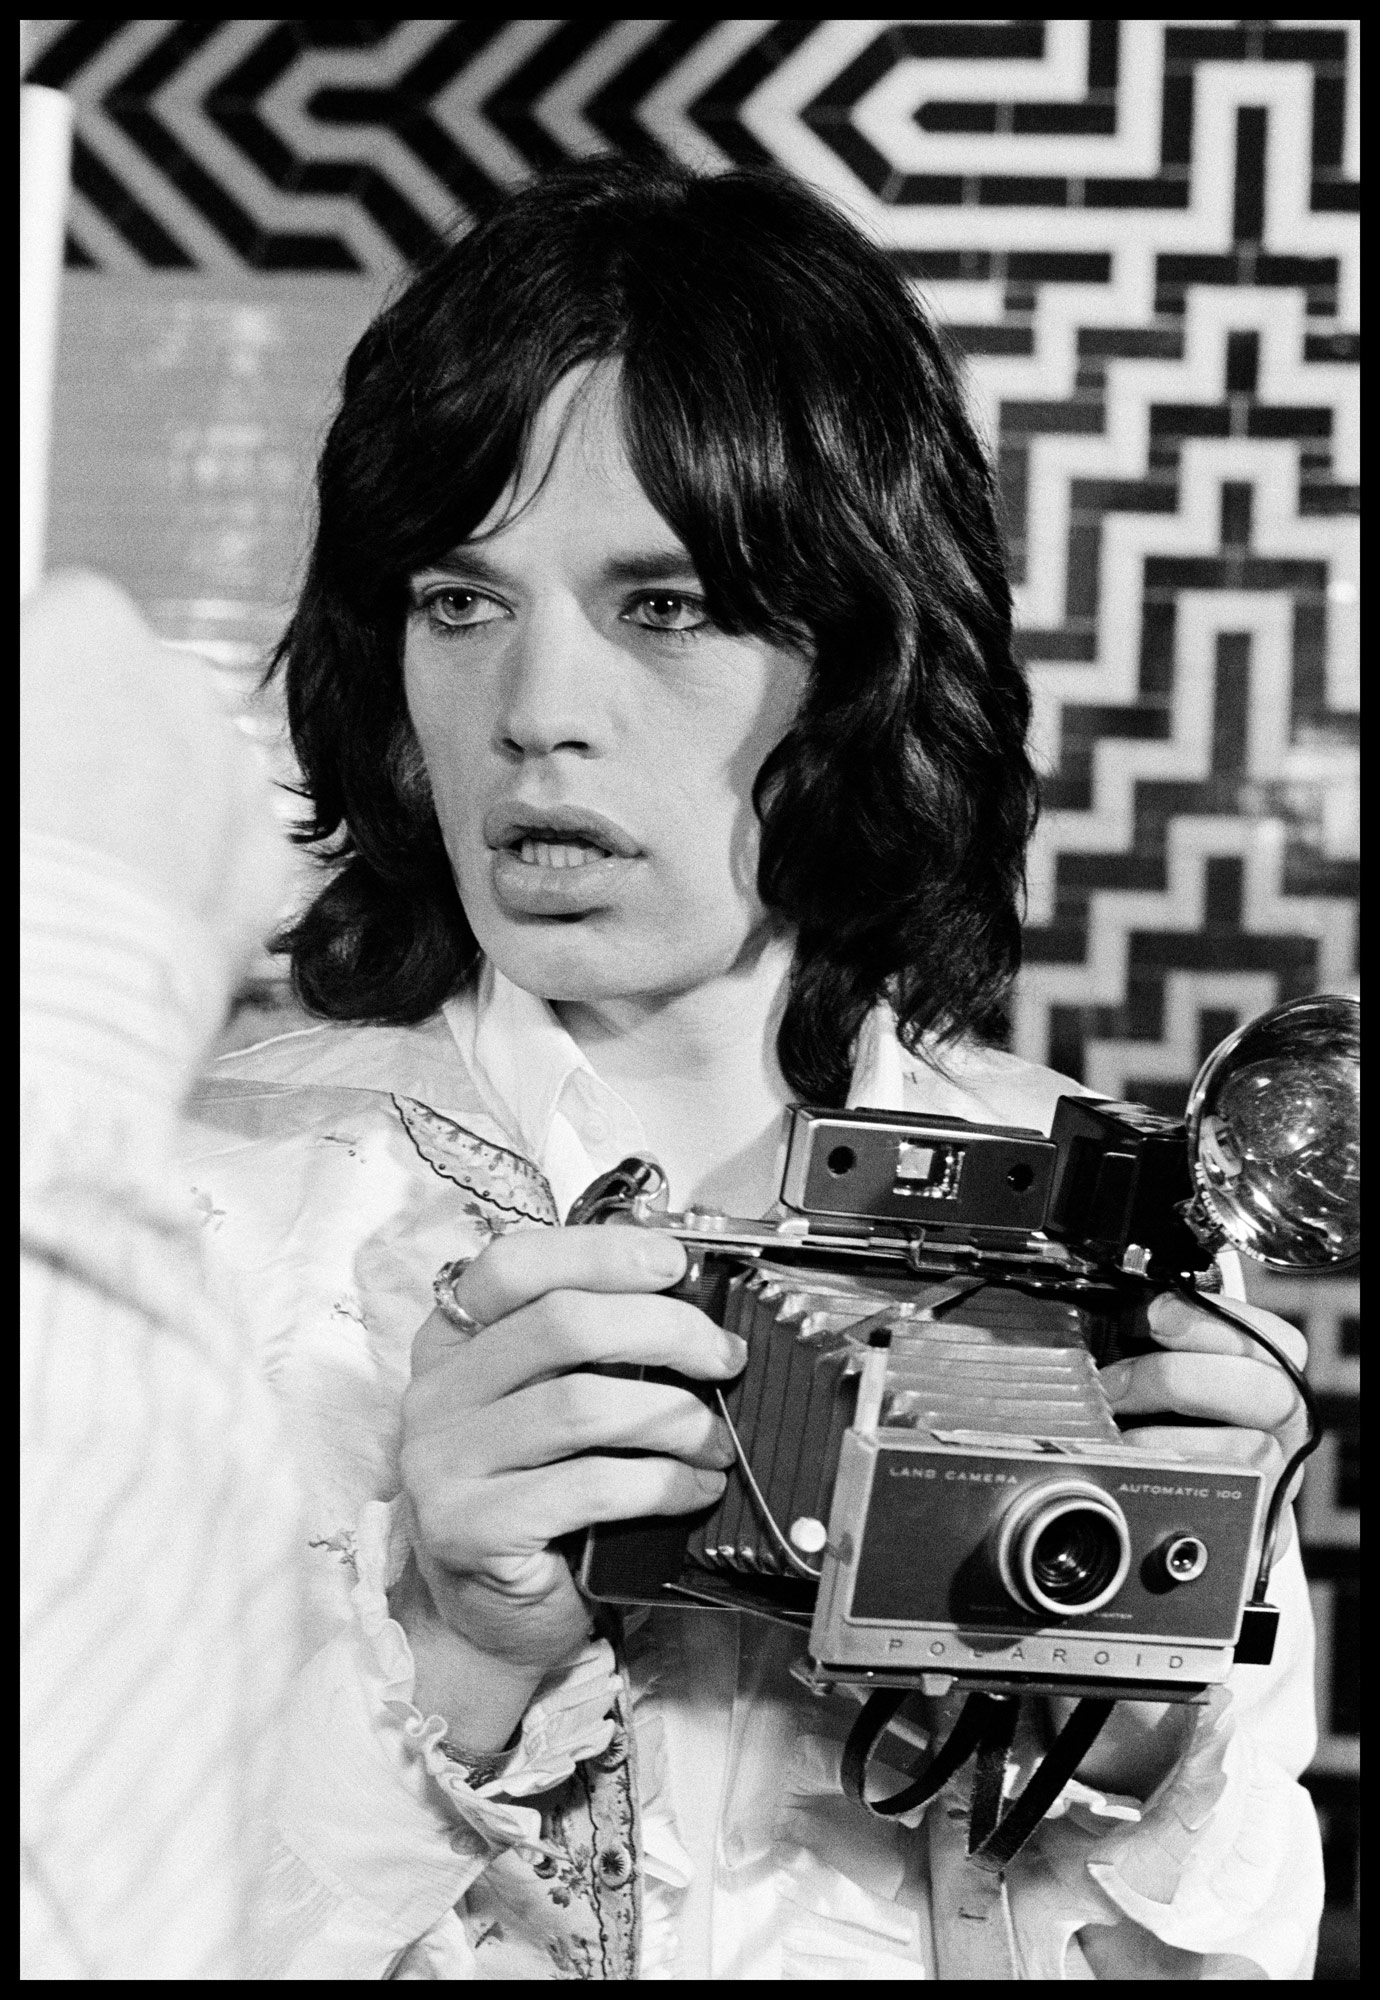 Mick_Jagger_Performance_2.jpg